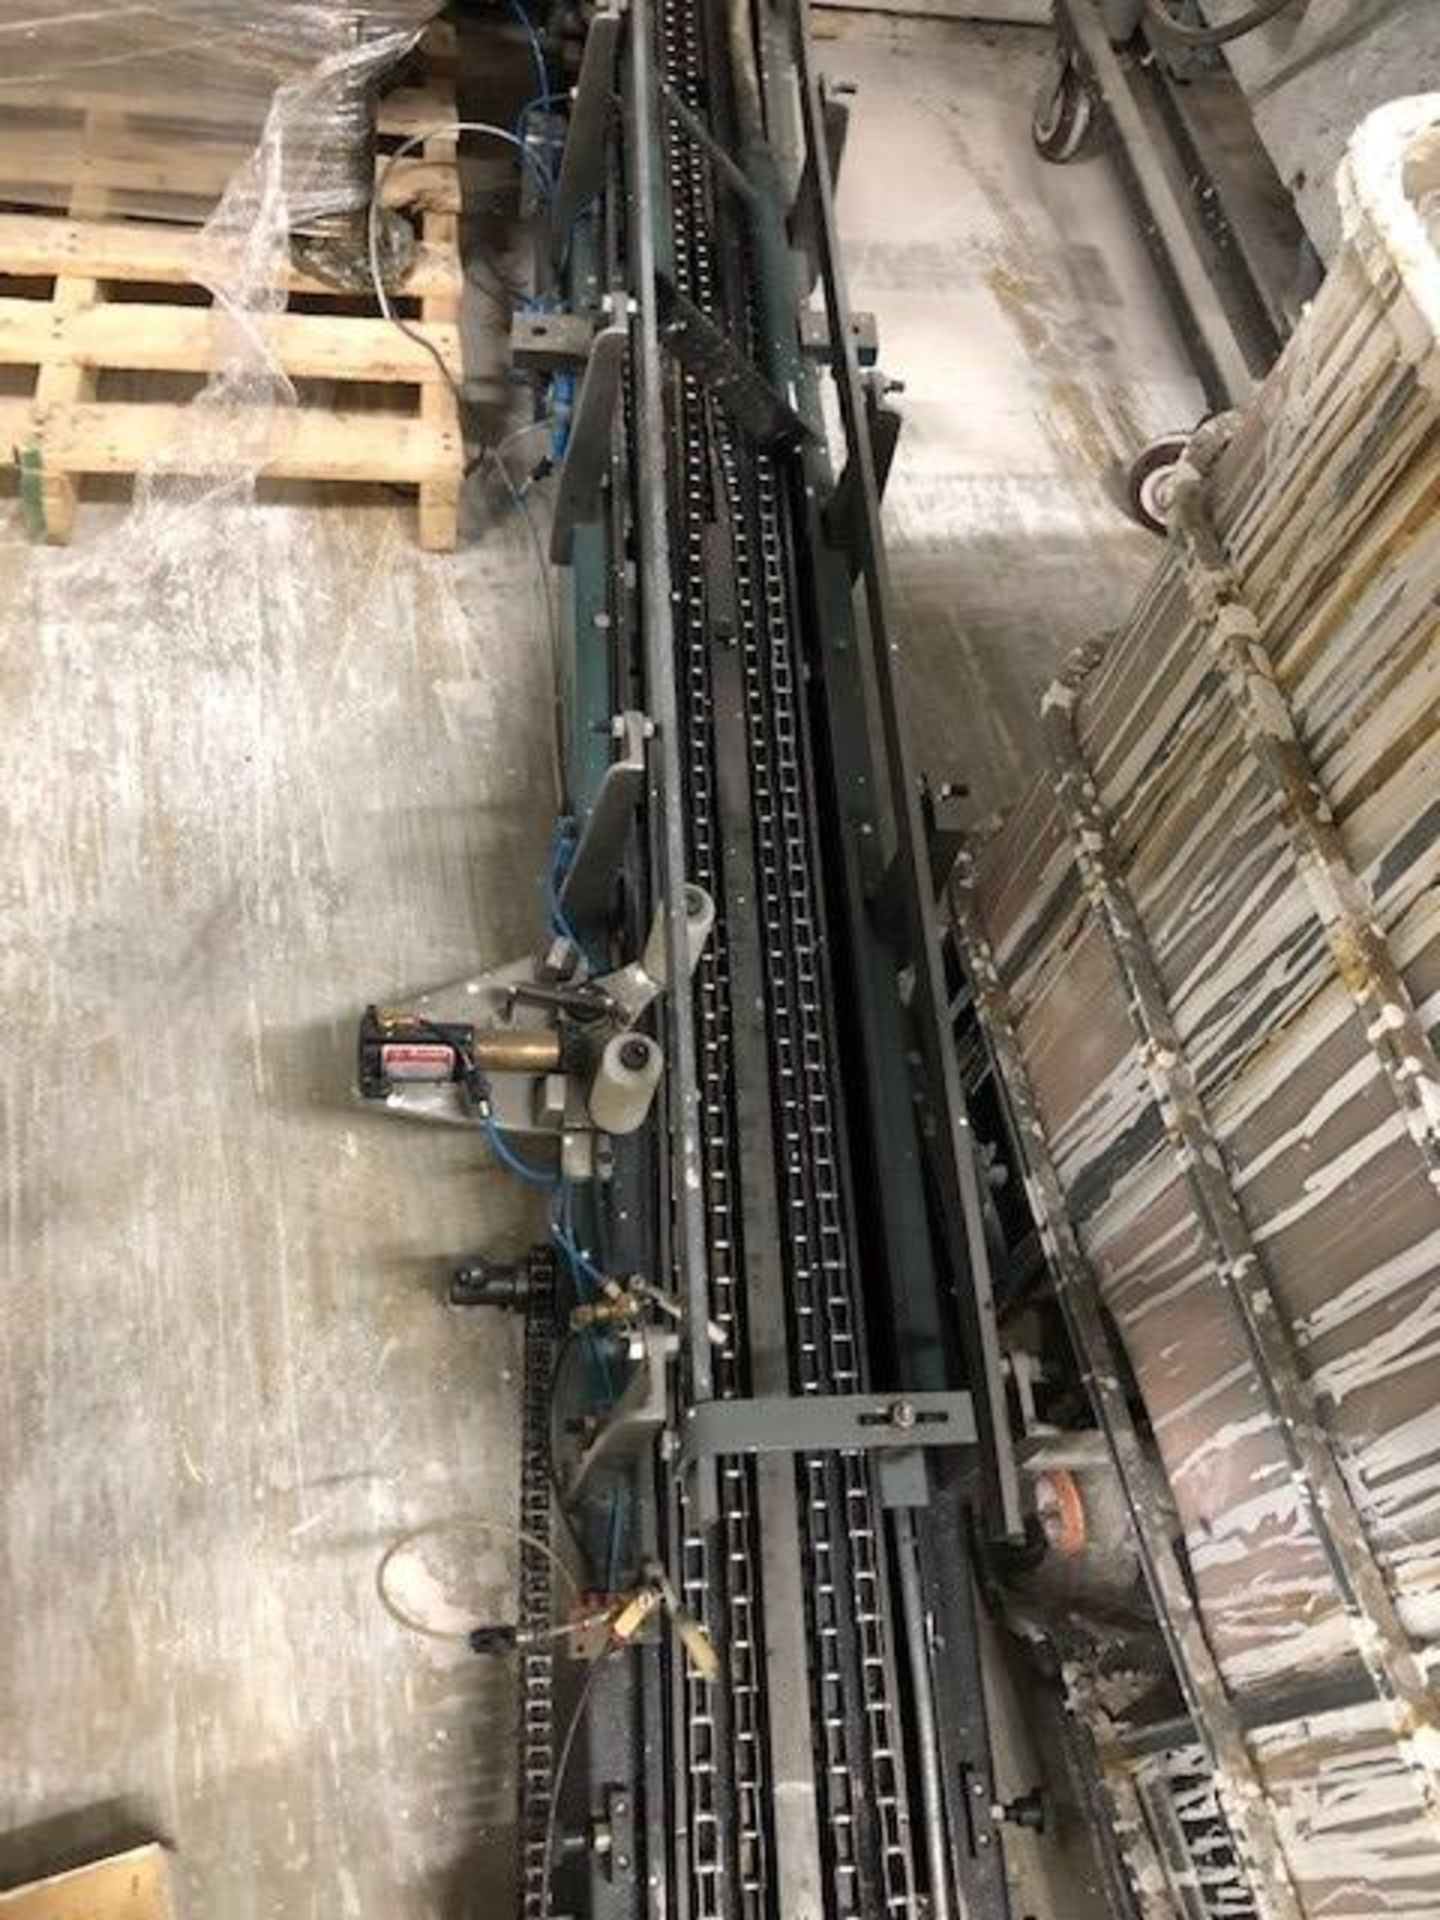 Lot 31 - Bail-o-Matic Heisler, model: C, s/n: 10-657, date: 6-1-98 including infeed conveyor